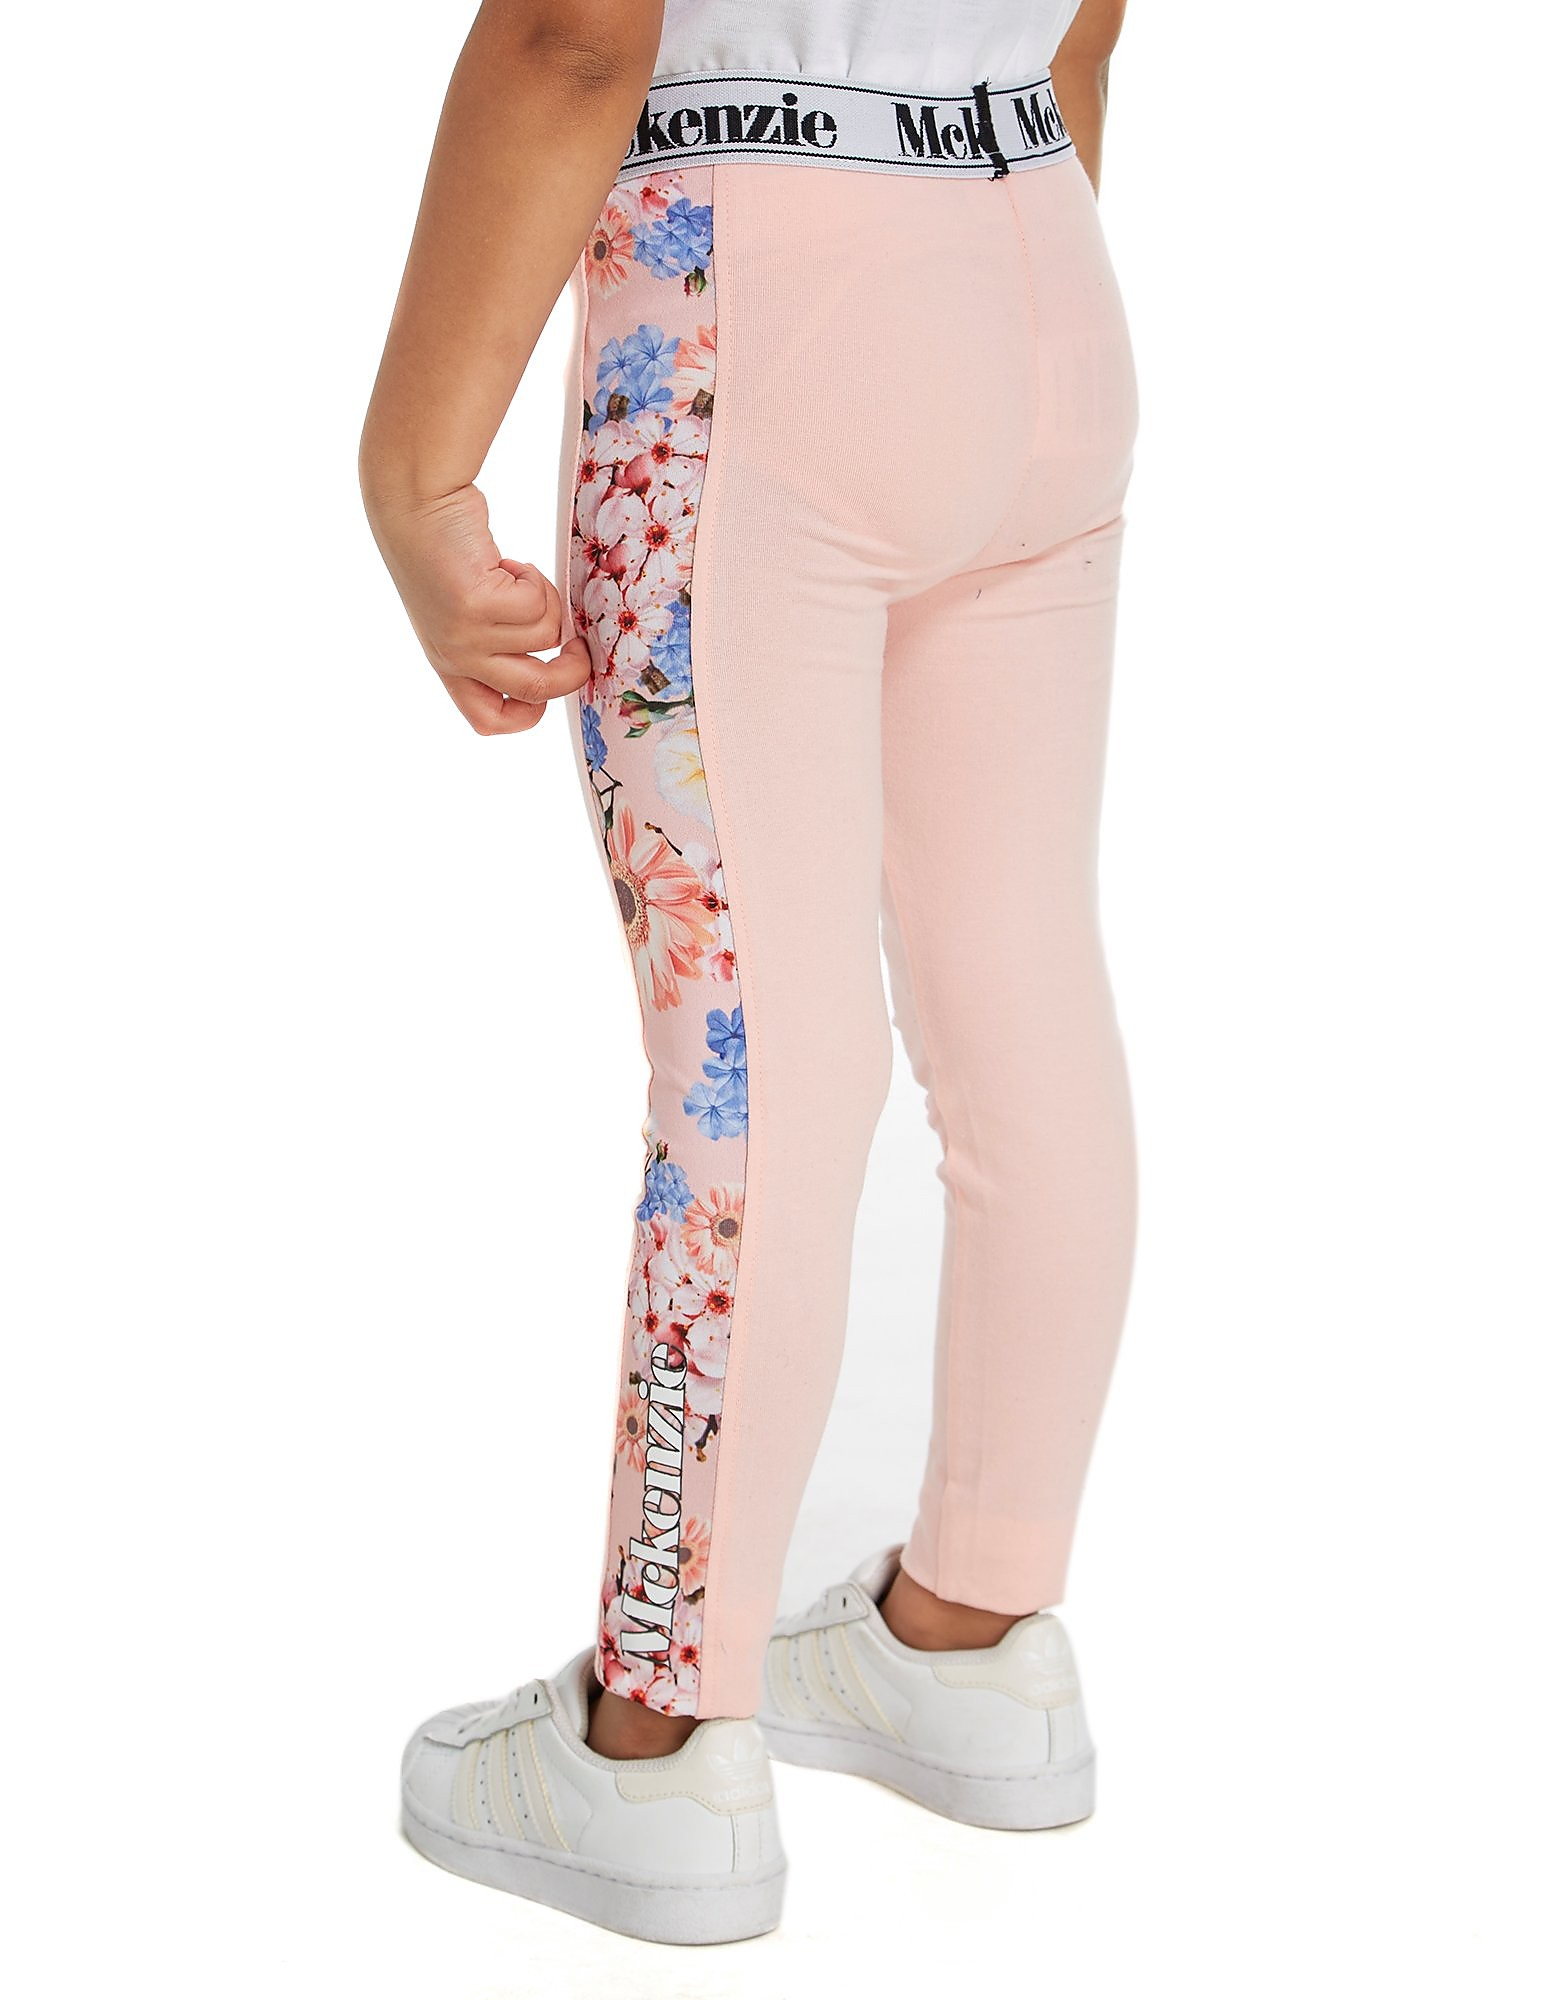 McKenzie Girls' Lake Leggings Children